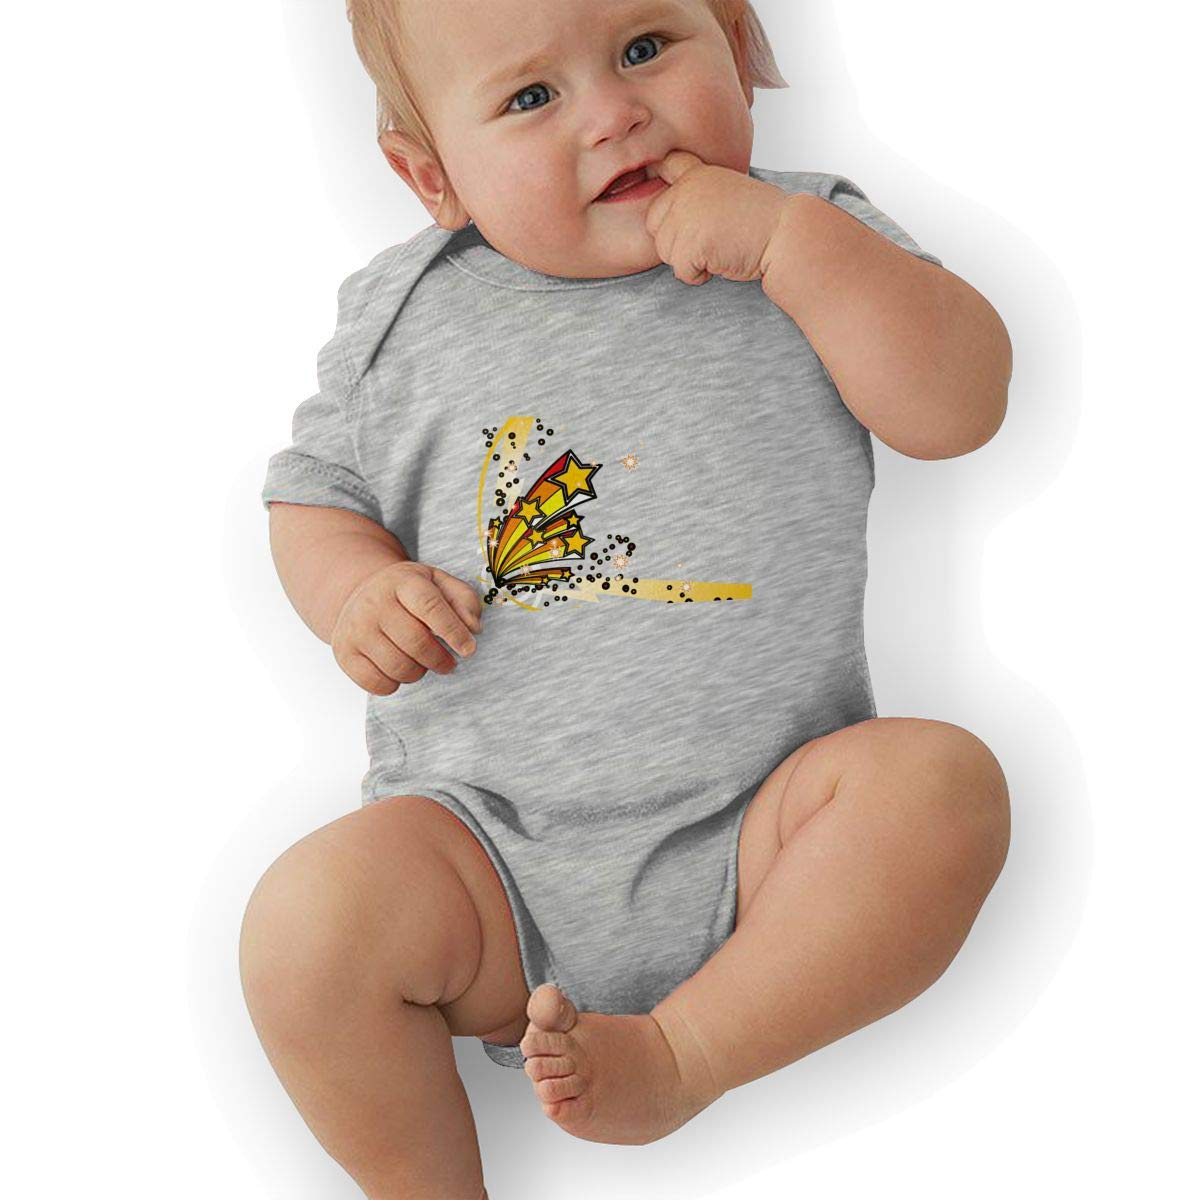 Toddler Baby Boys Bodysuit Short-Sleeve Onesie Creative Stereoscopic Stars Print Outfit Spring Pajamas